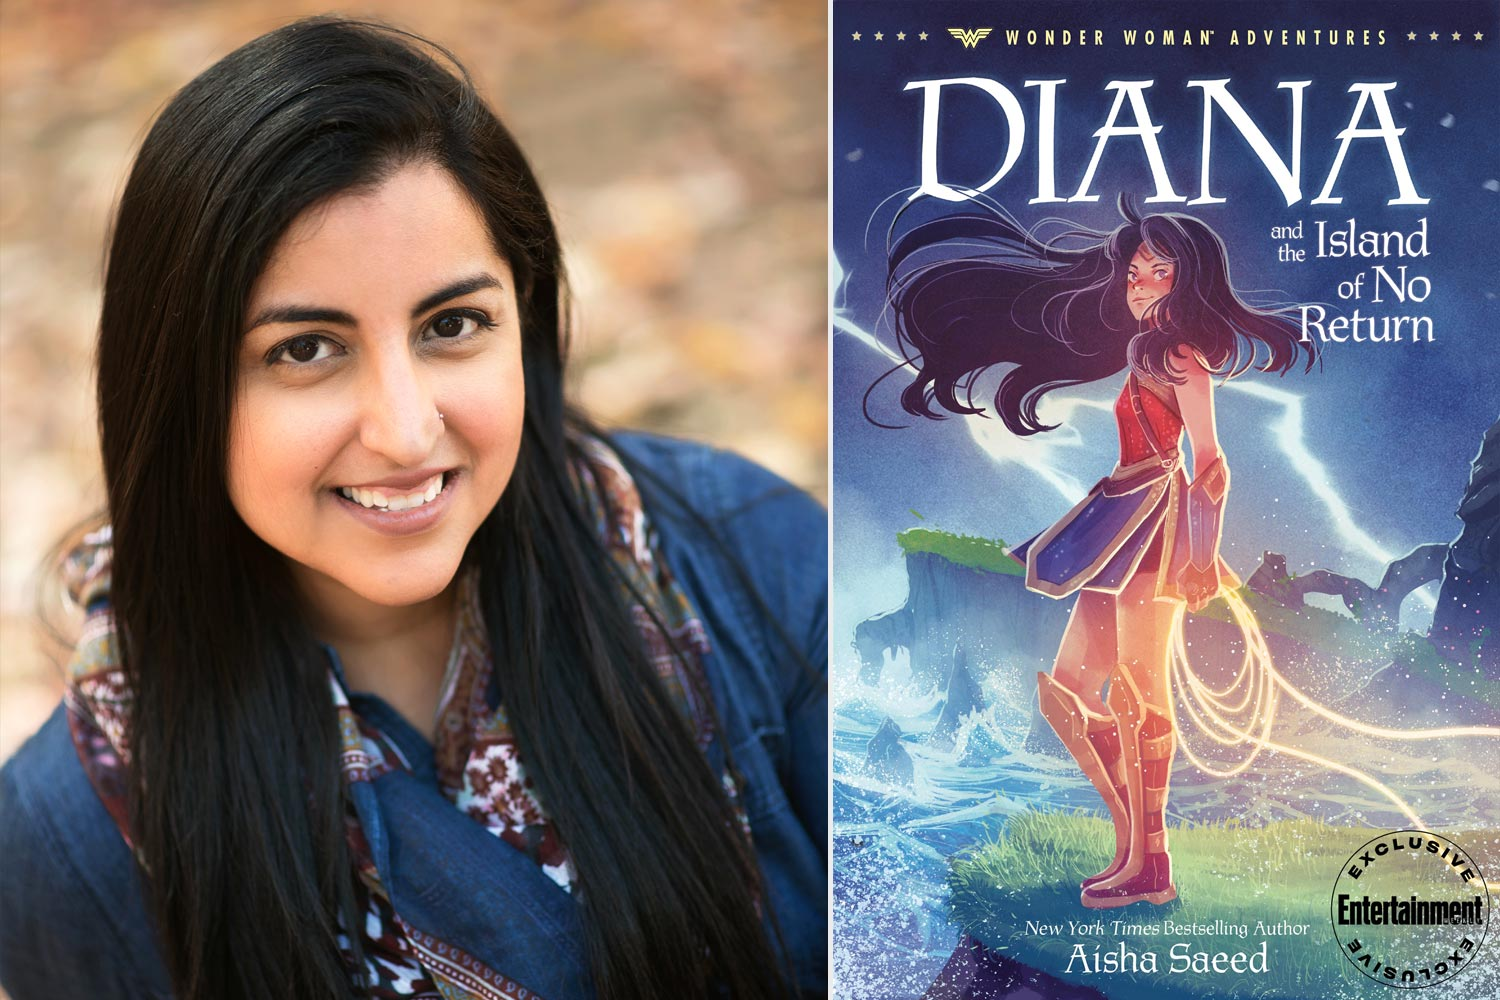 Diana and the Island of No Return by Aisha Saeed